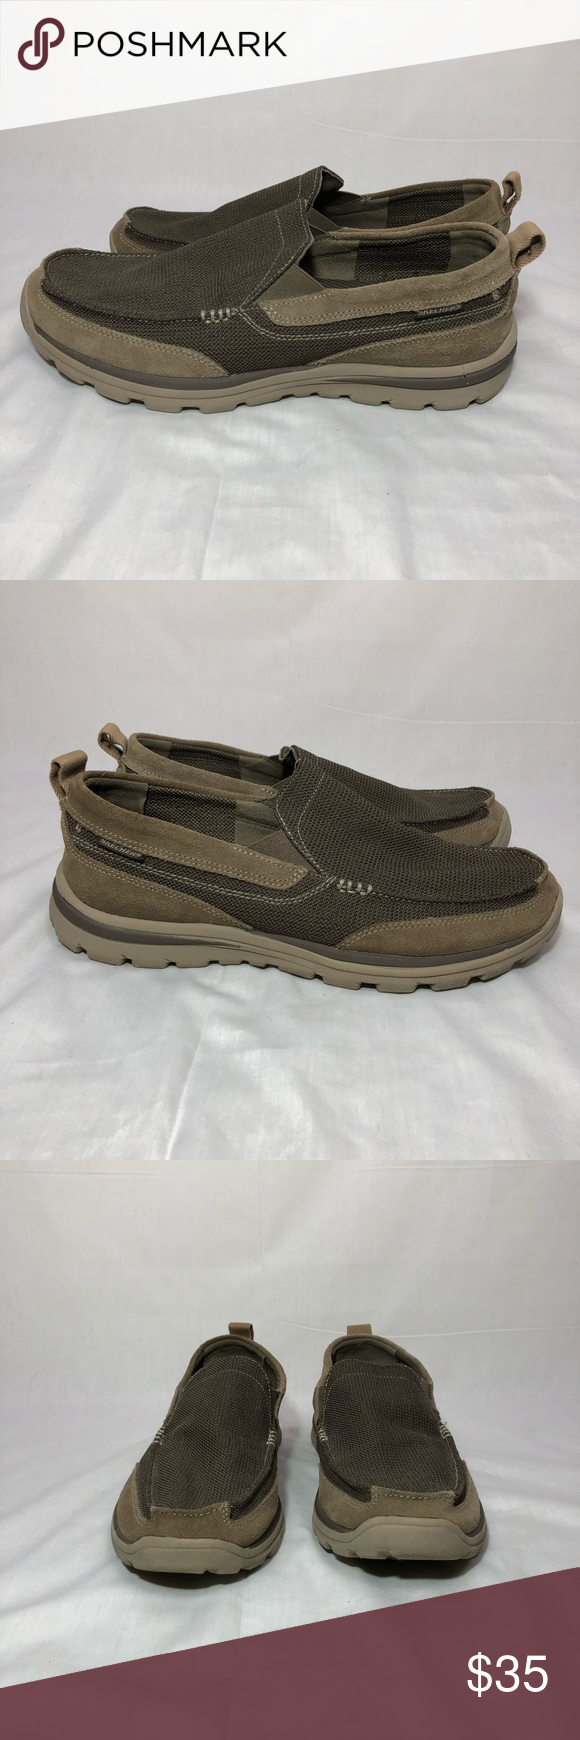 Sketchers Milford Relaxed Fit Loafer